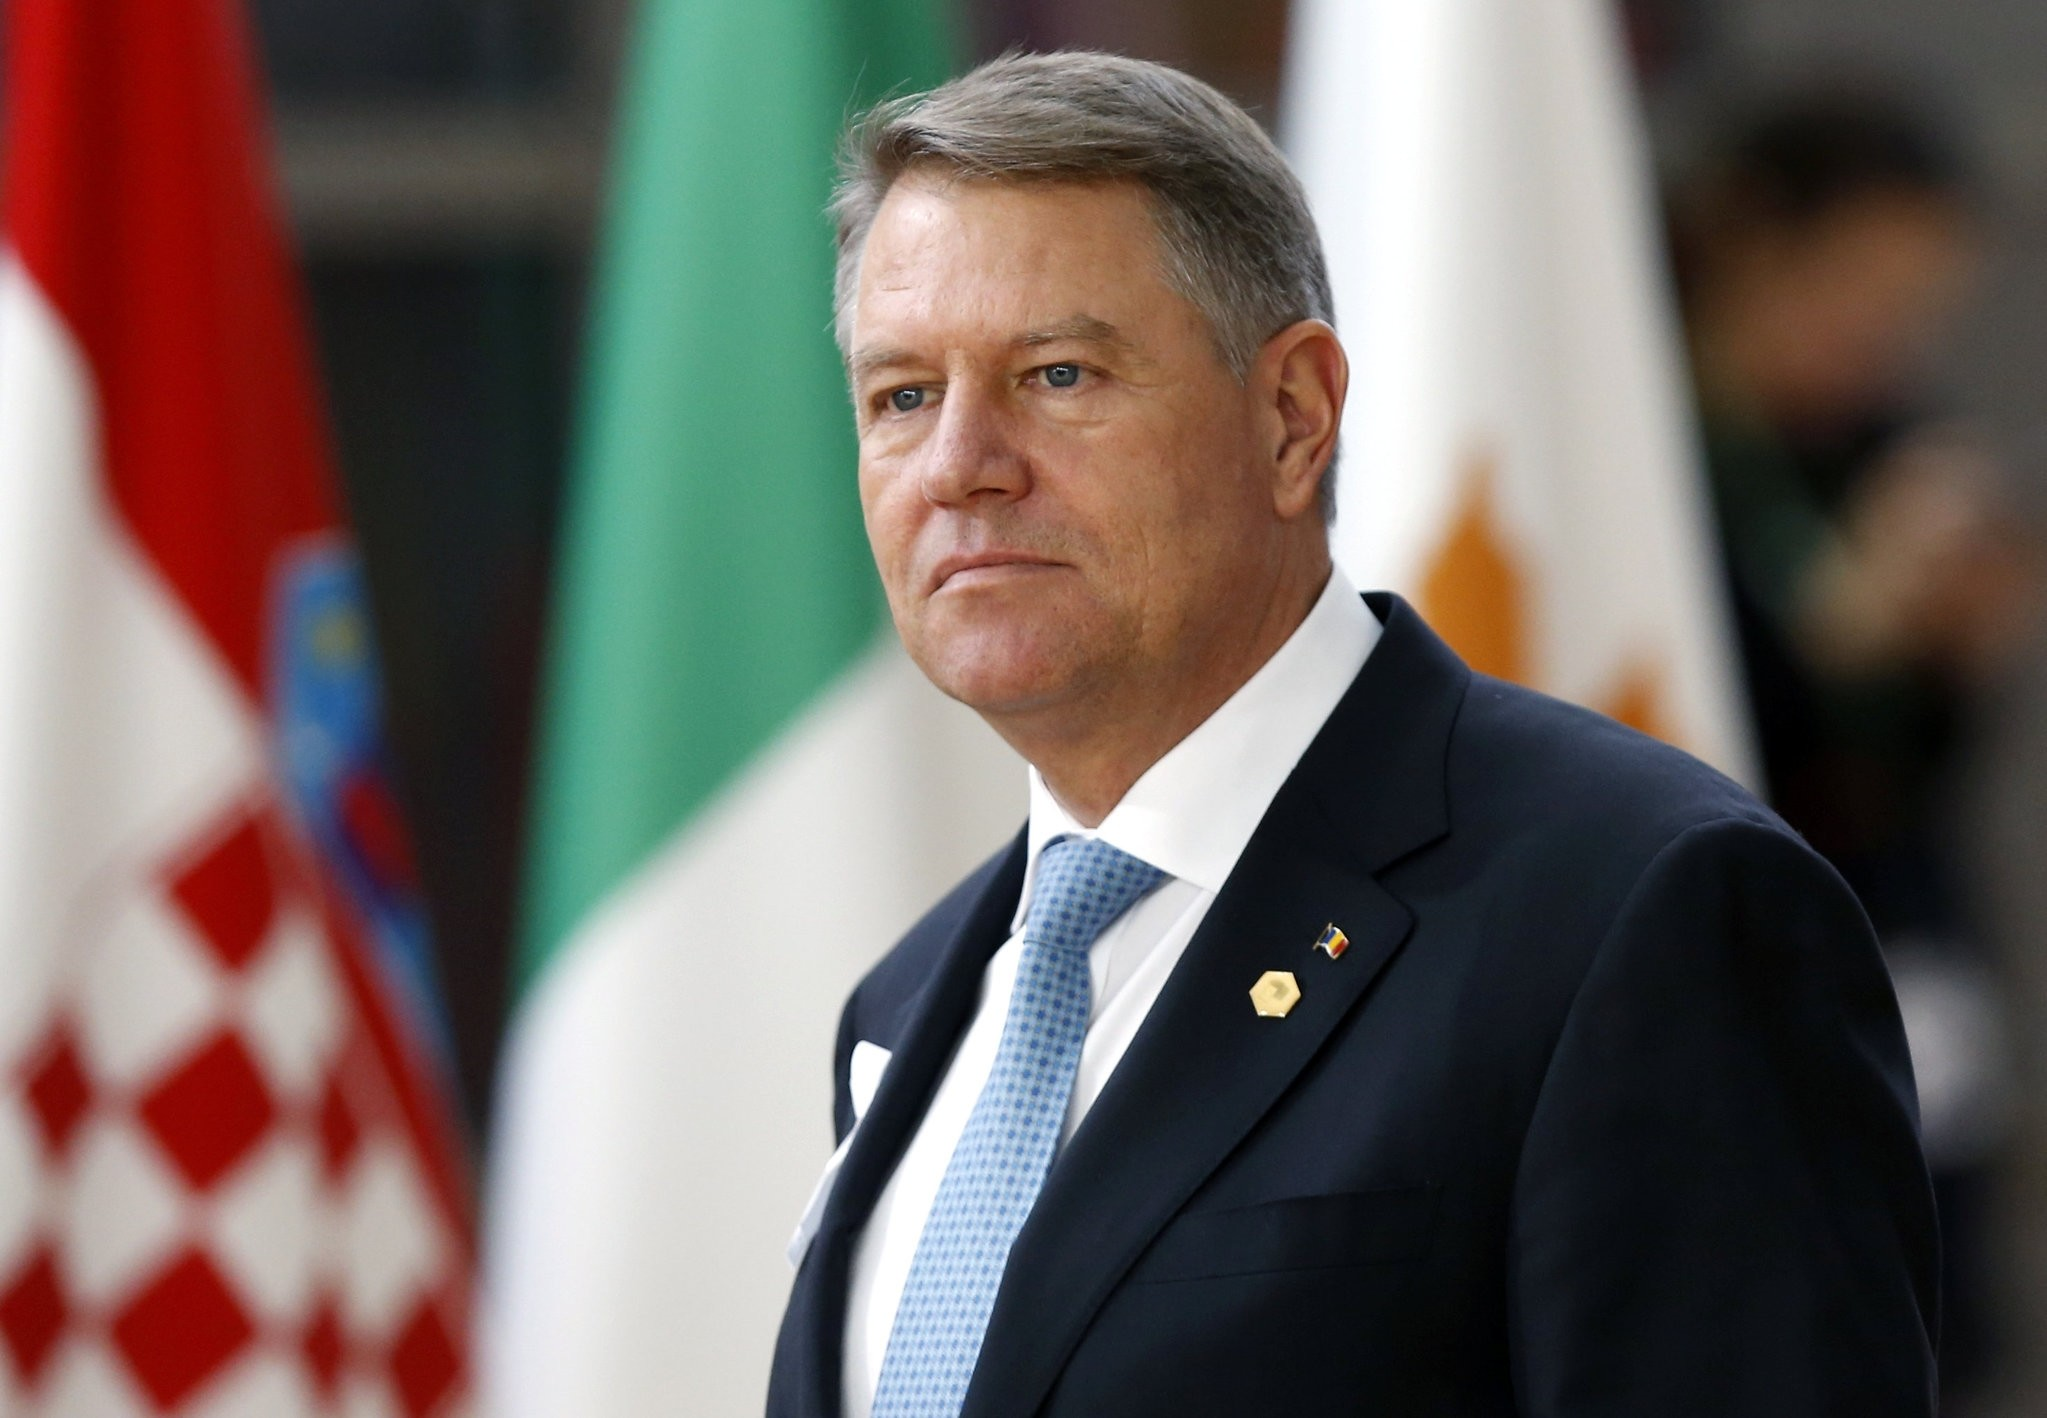 Romanian President Klaus Iohannis arrives at a European Union leaders summit in Brussels, Belgium, March 22, 2018. (REUTERS Photo)